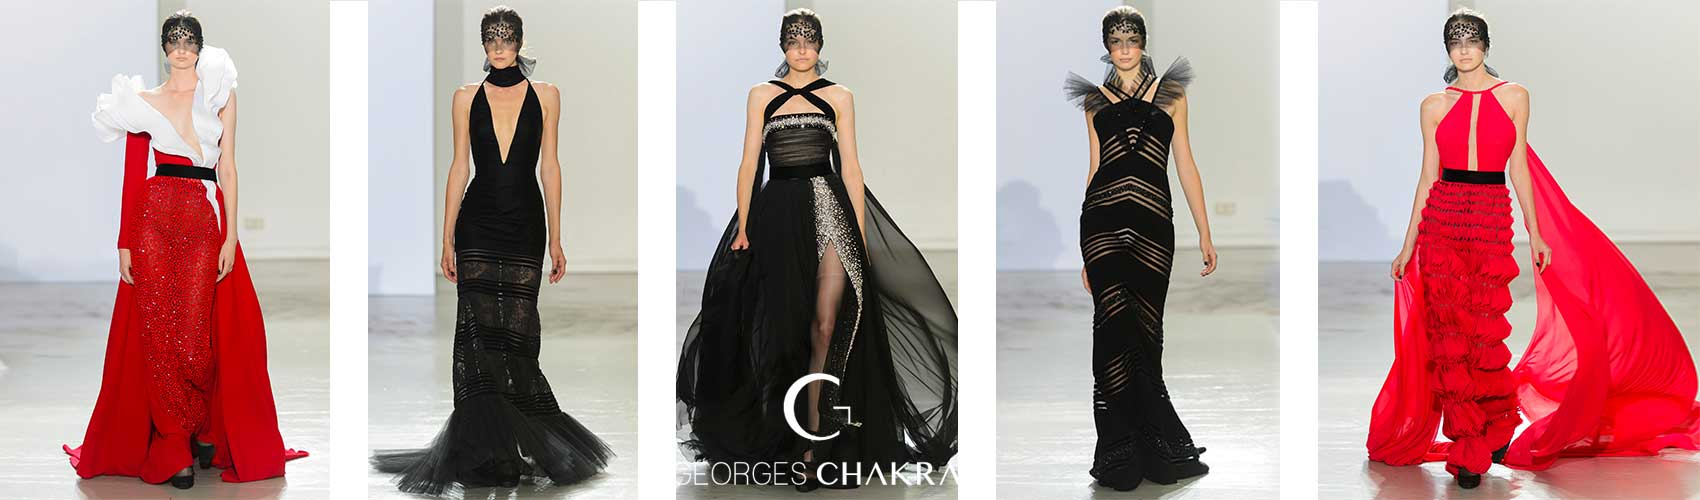 3 Georges Chakra FW 1819 3